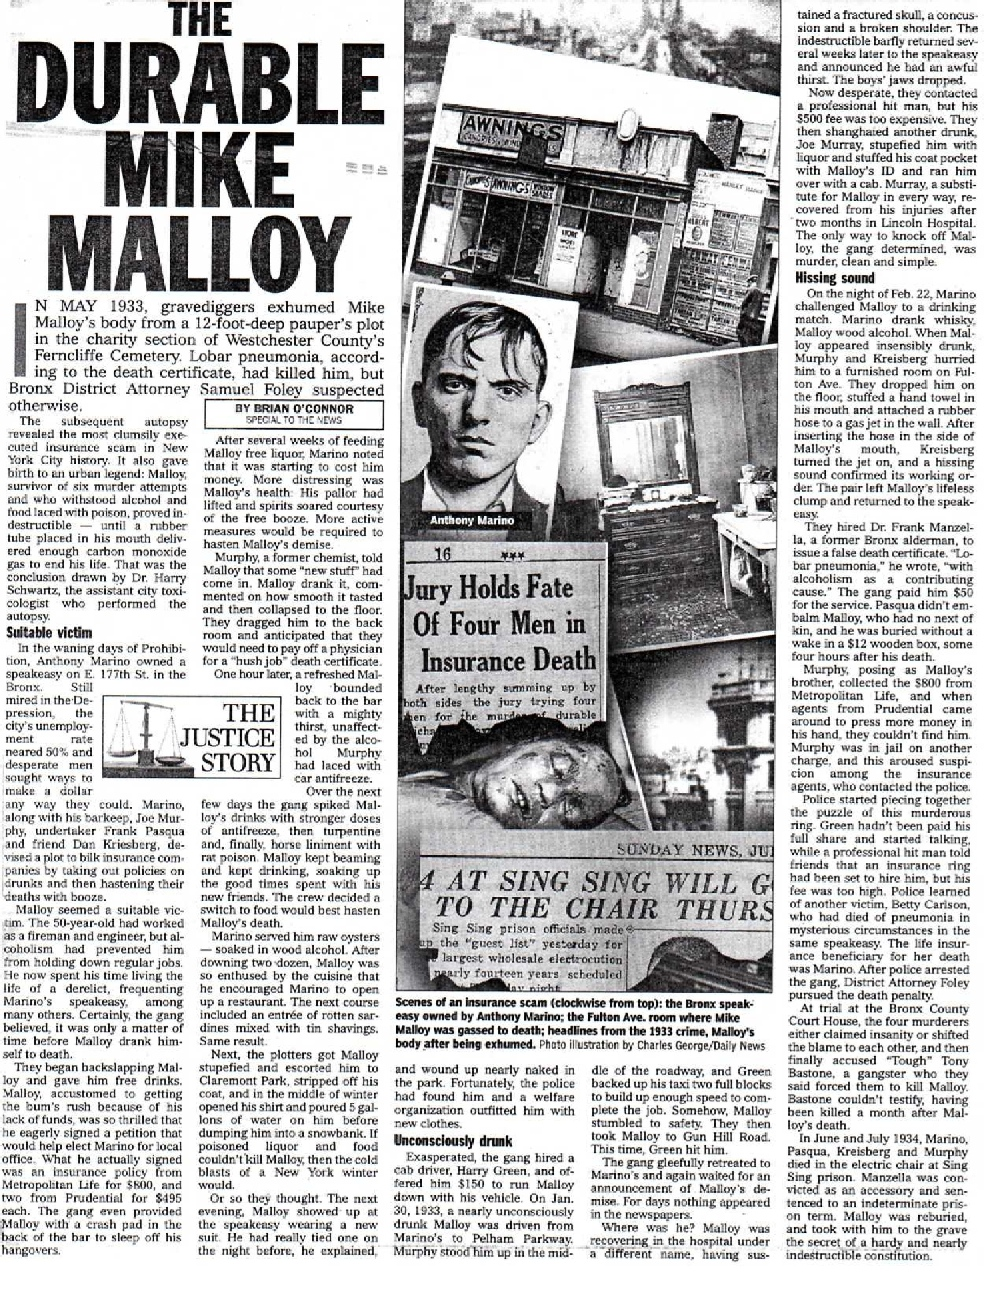 The Durable Mike Malloy